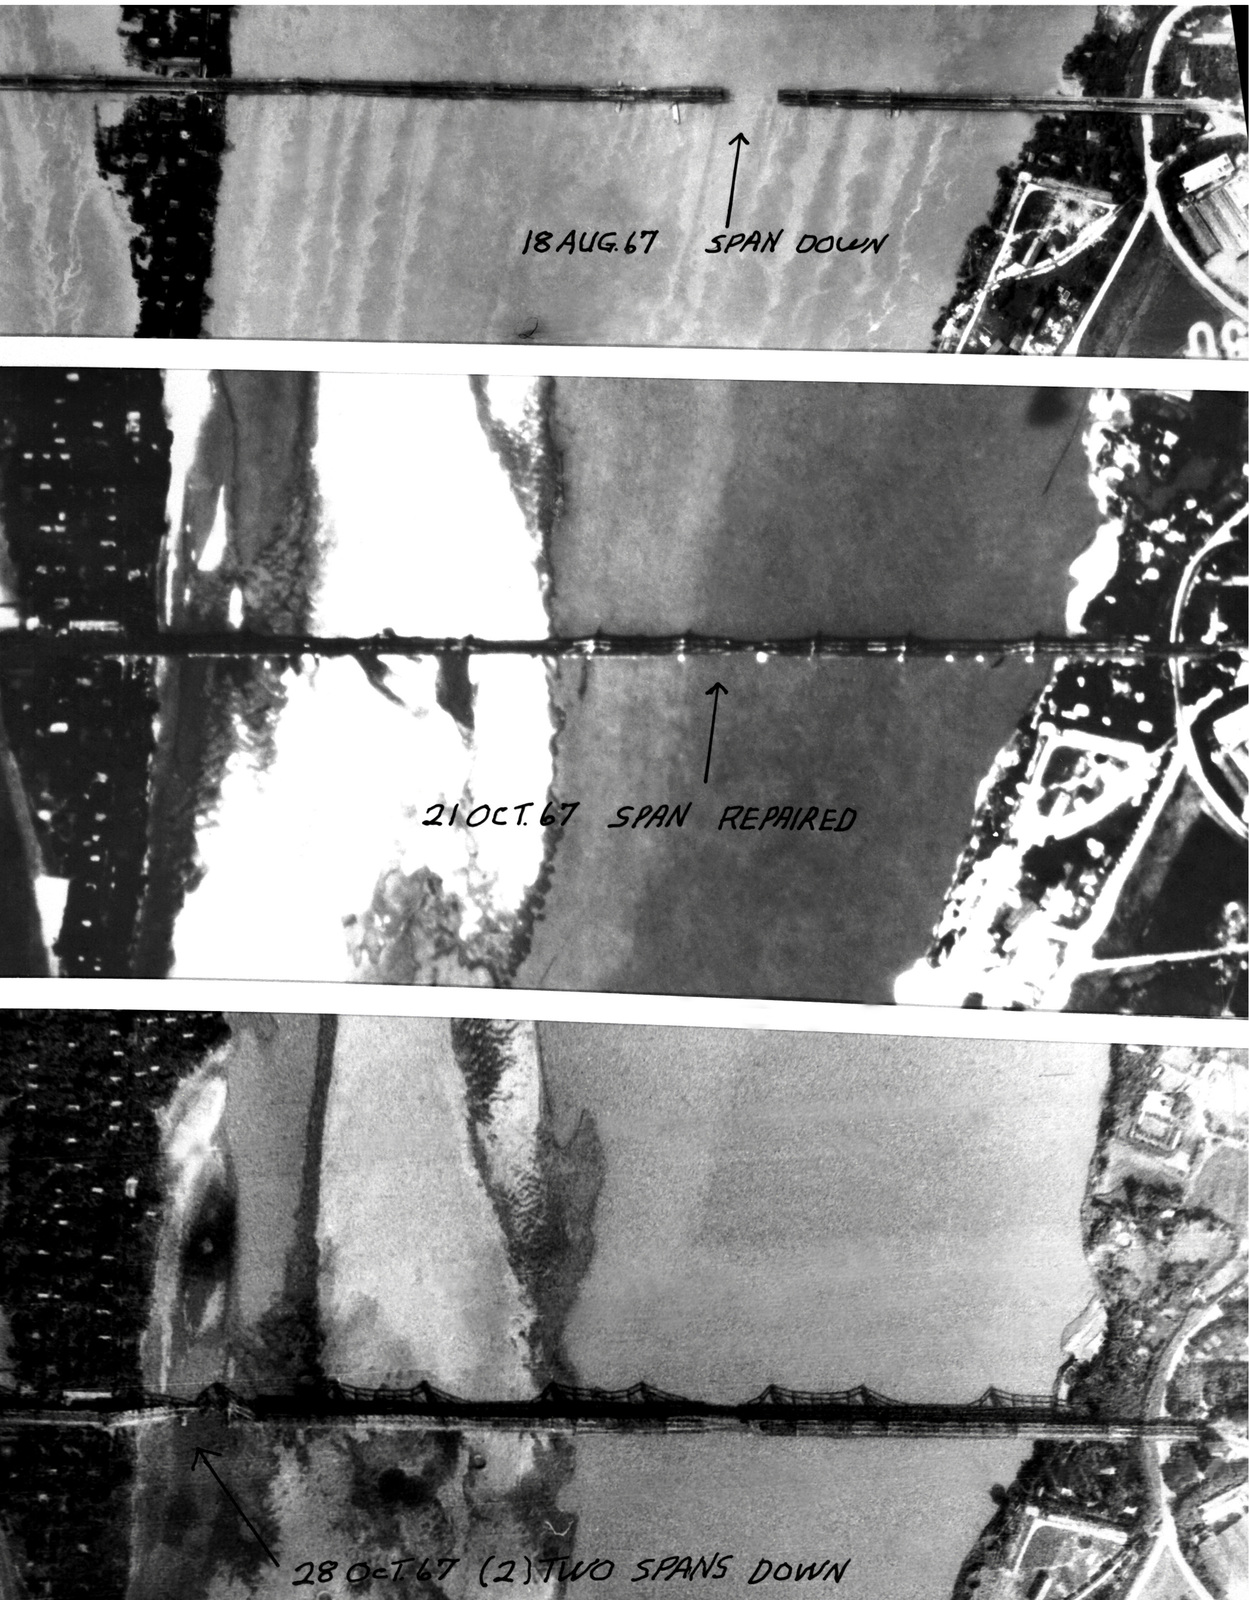 A sequence of reconnaissance photos of the different stages of the Hanoi/Doumer highway-railroad bridge, 1.7 miles northeast of Hanoi after an air strike. The top photo shows the bridge with one span dropped after the Aug. 11 strike. The middle print reveals the span repaired on Oct. 21 and the last photo shows the two spans dropped during the raids on Oct. 25